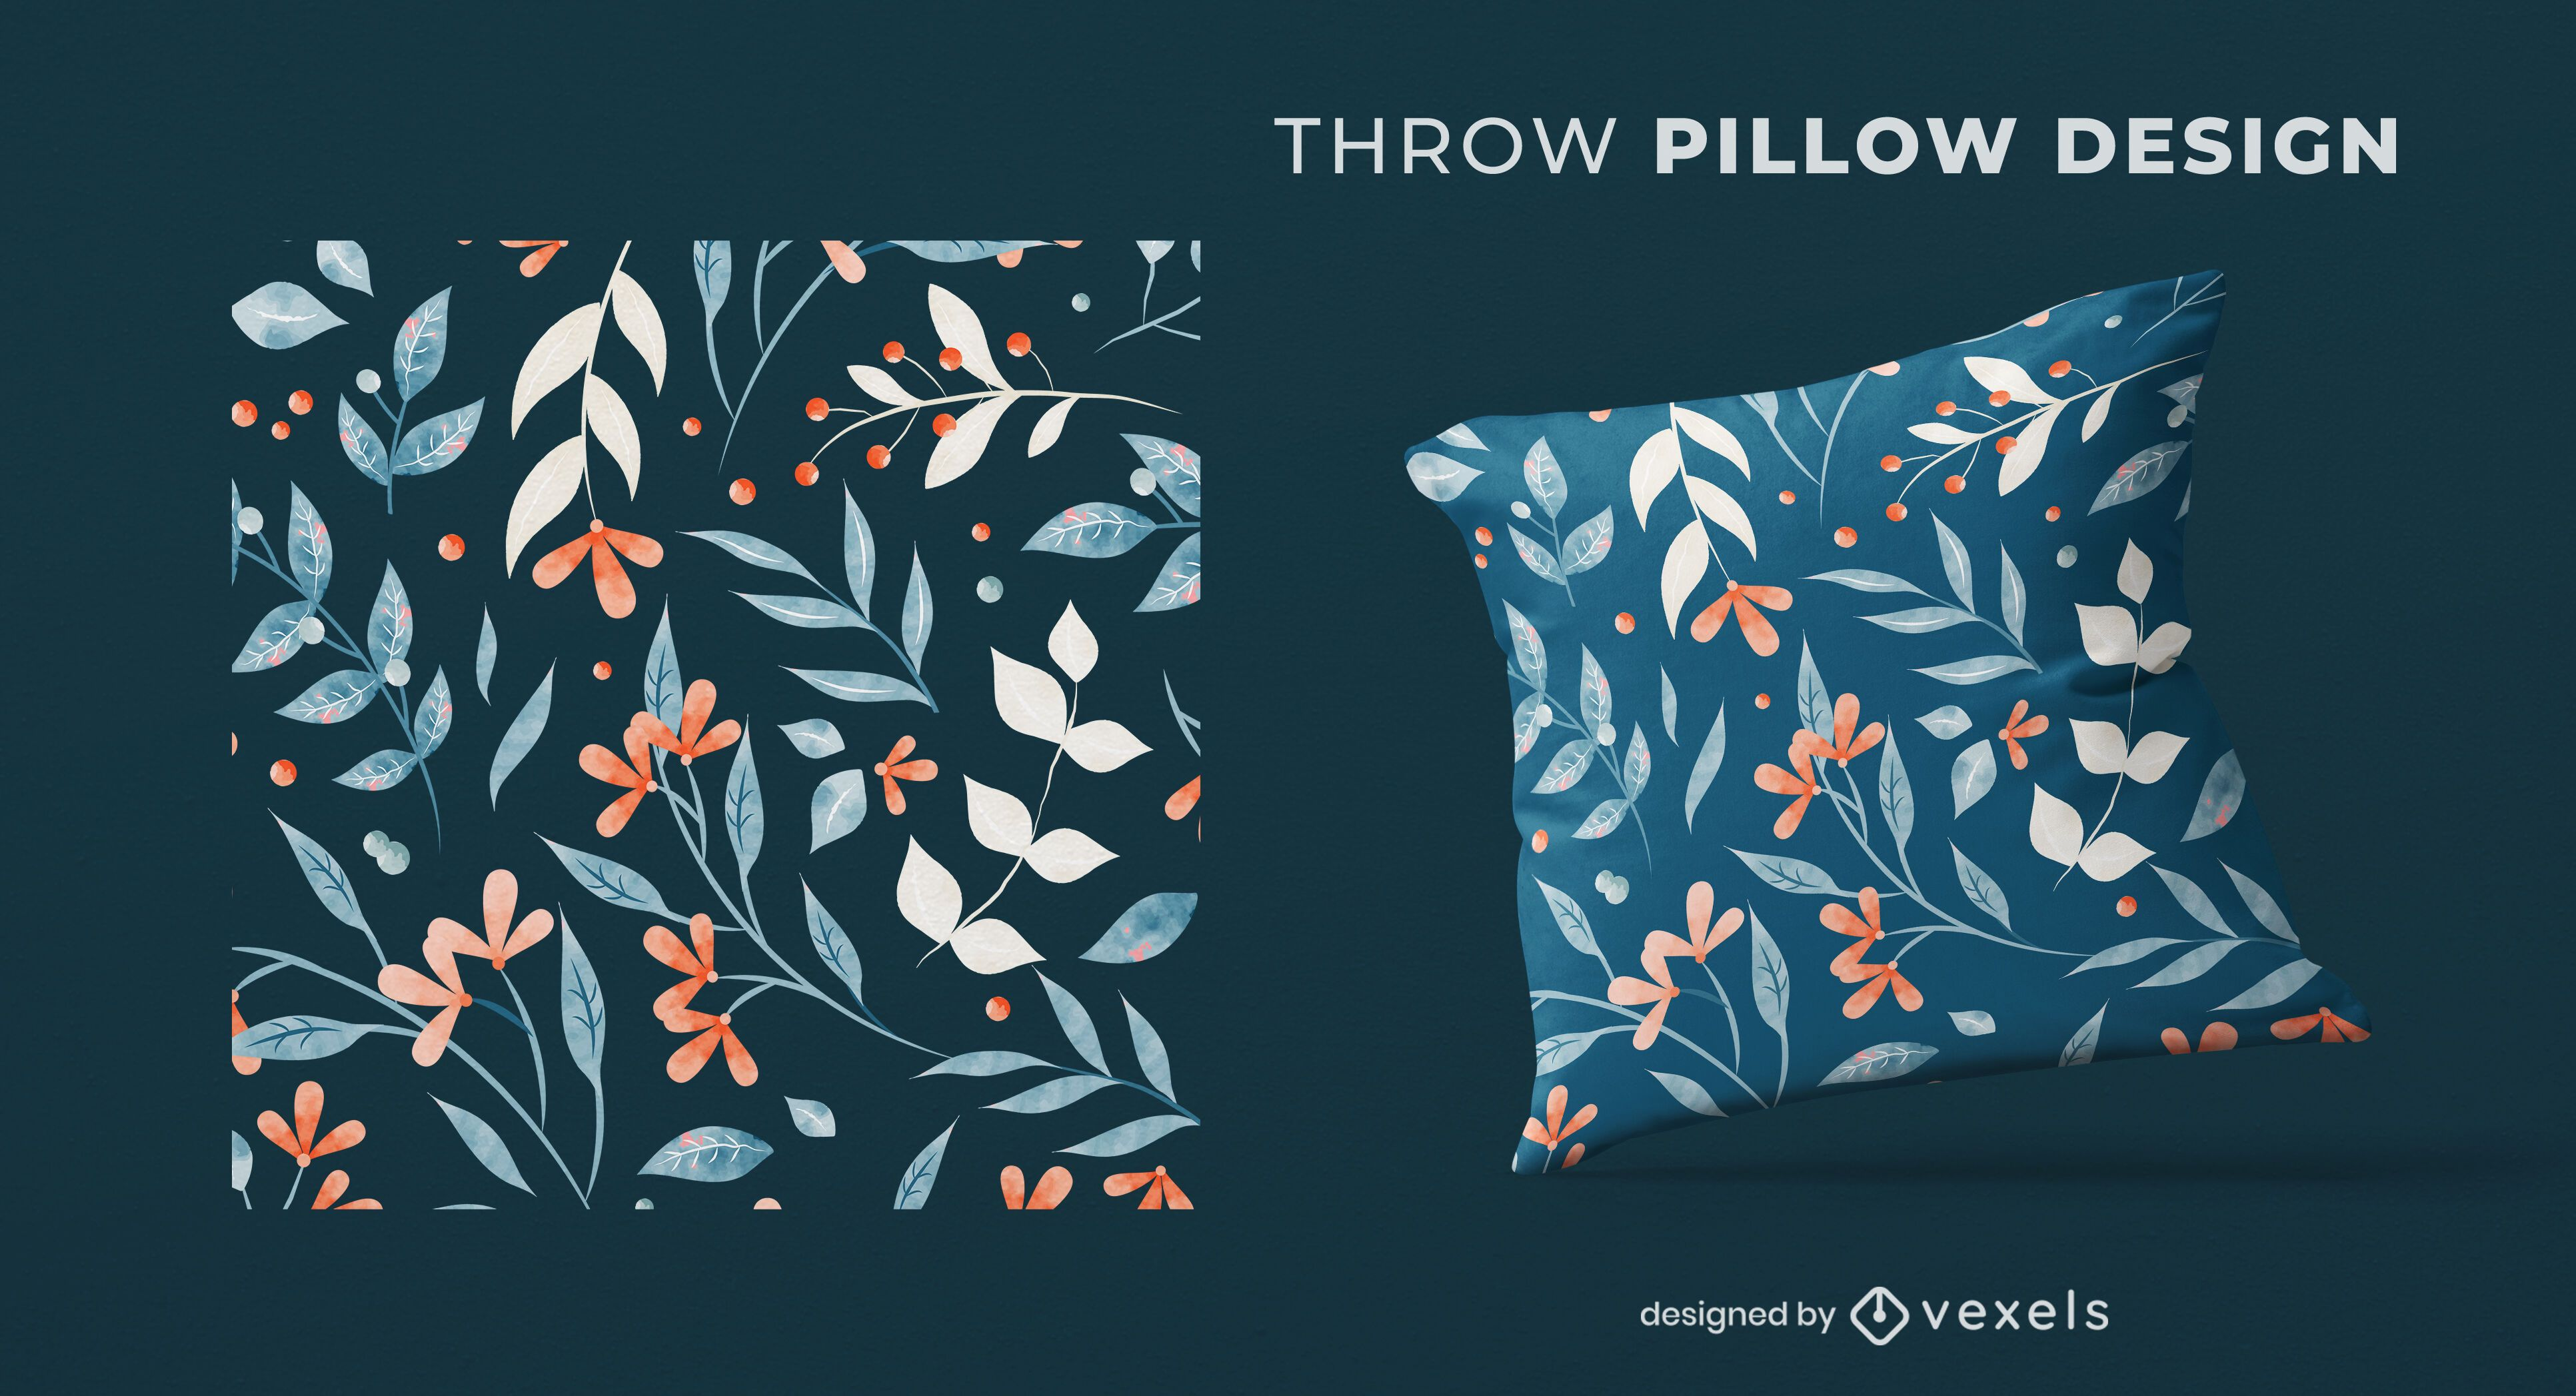 Floral twigs throw pillow design